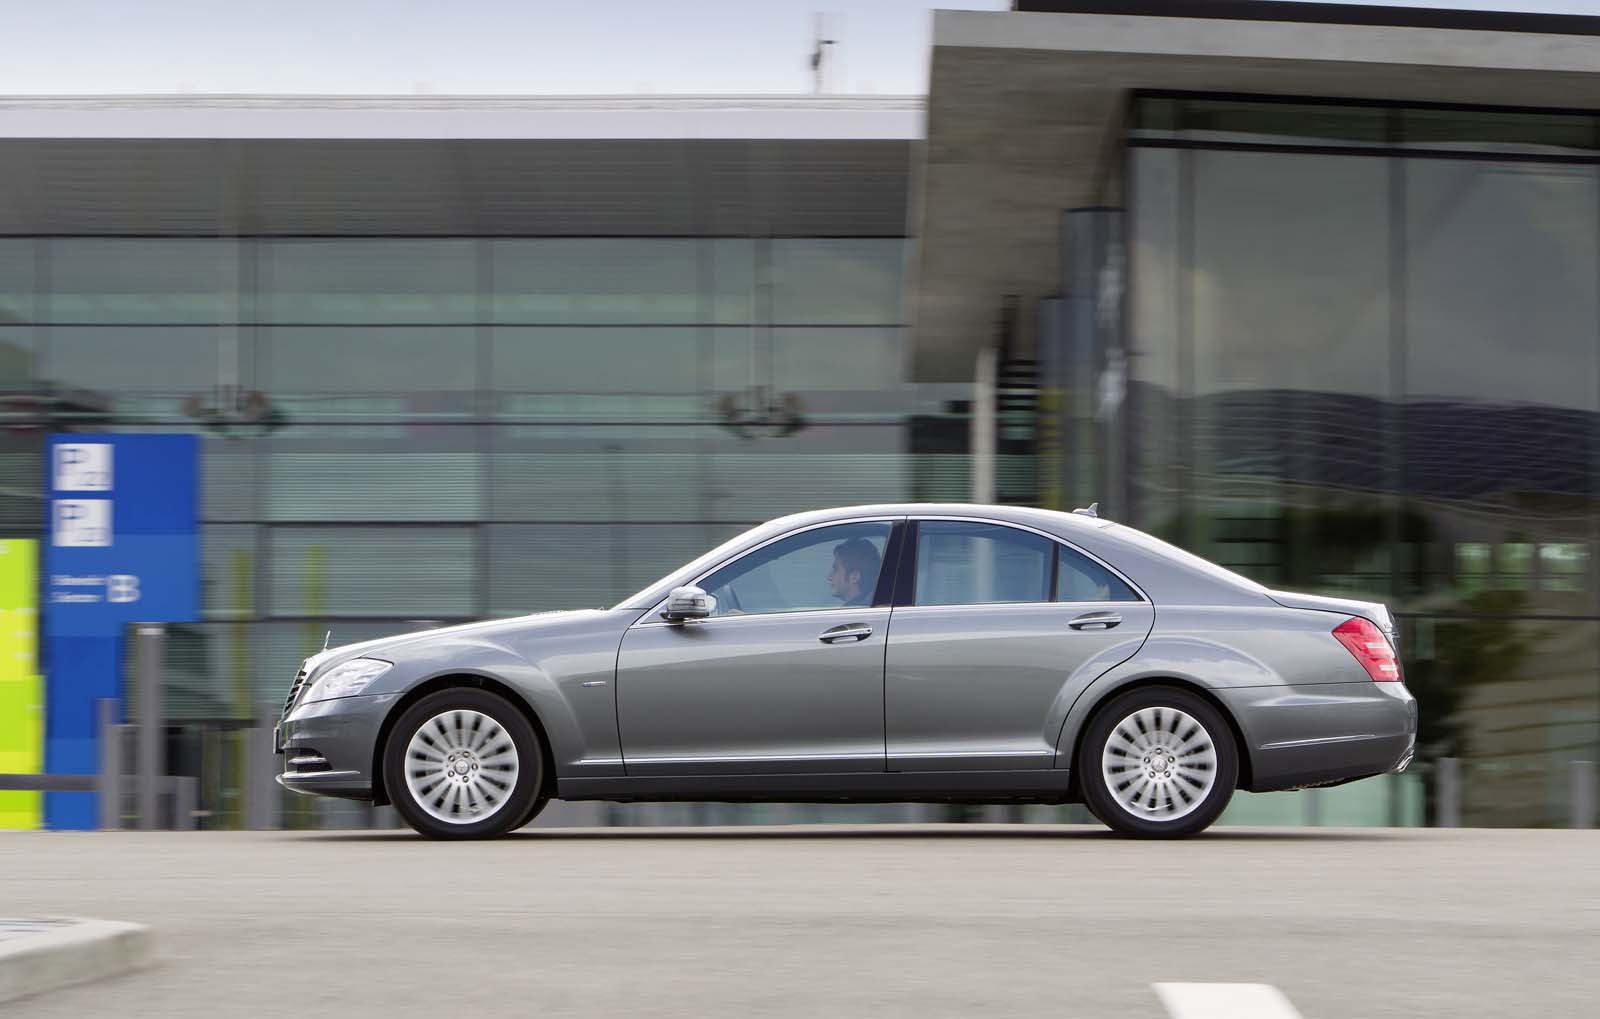 Mercedes benz s class with three new engines germancarforum for Mercedes benz forum s class